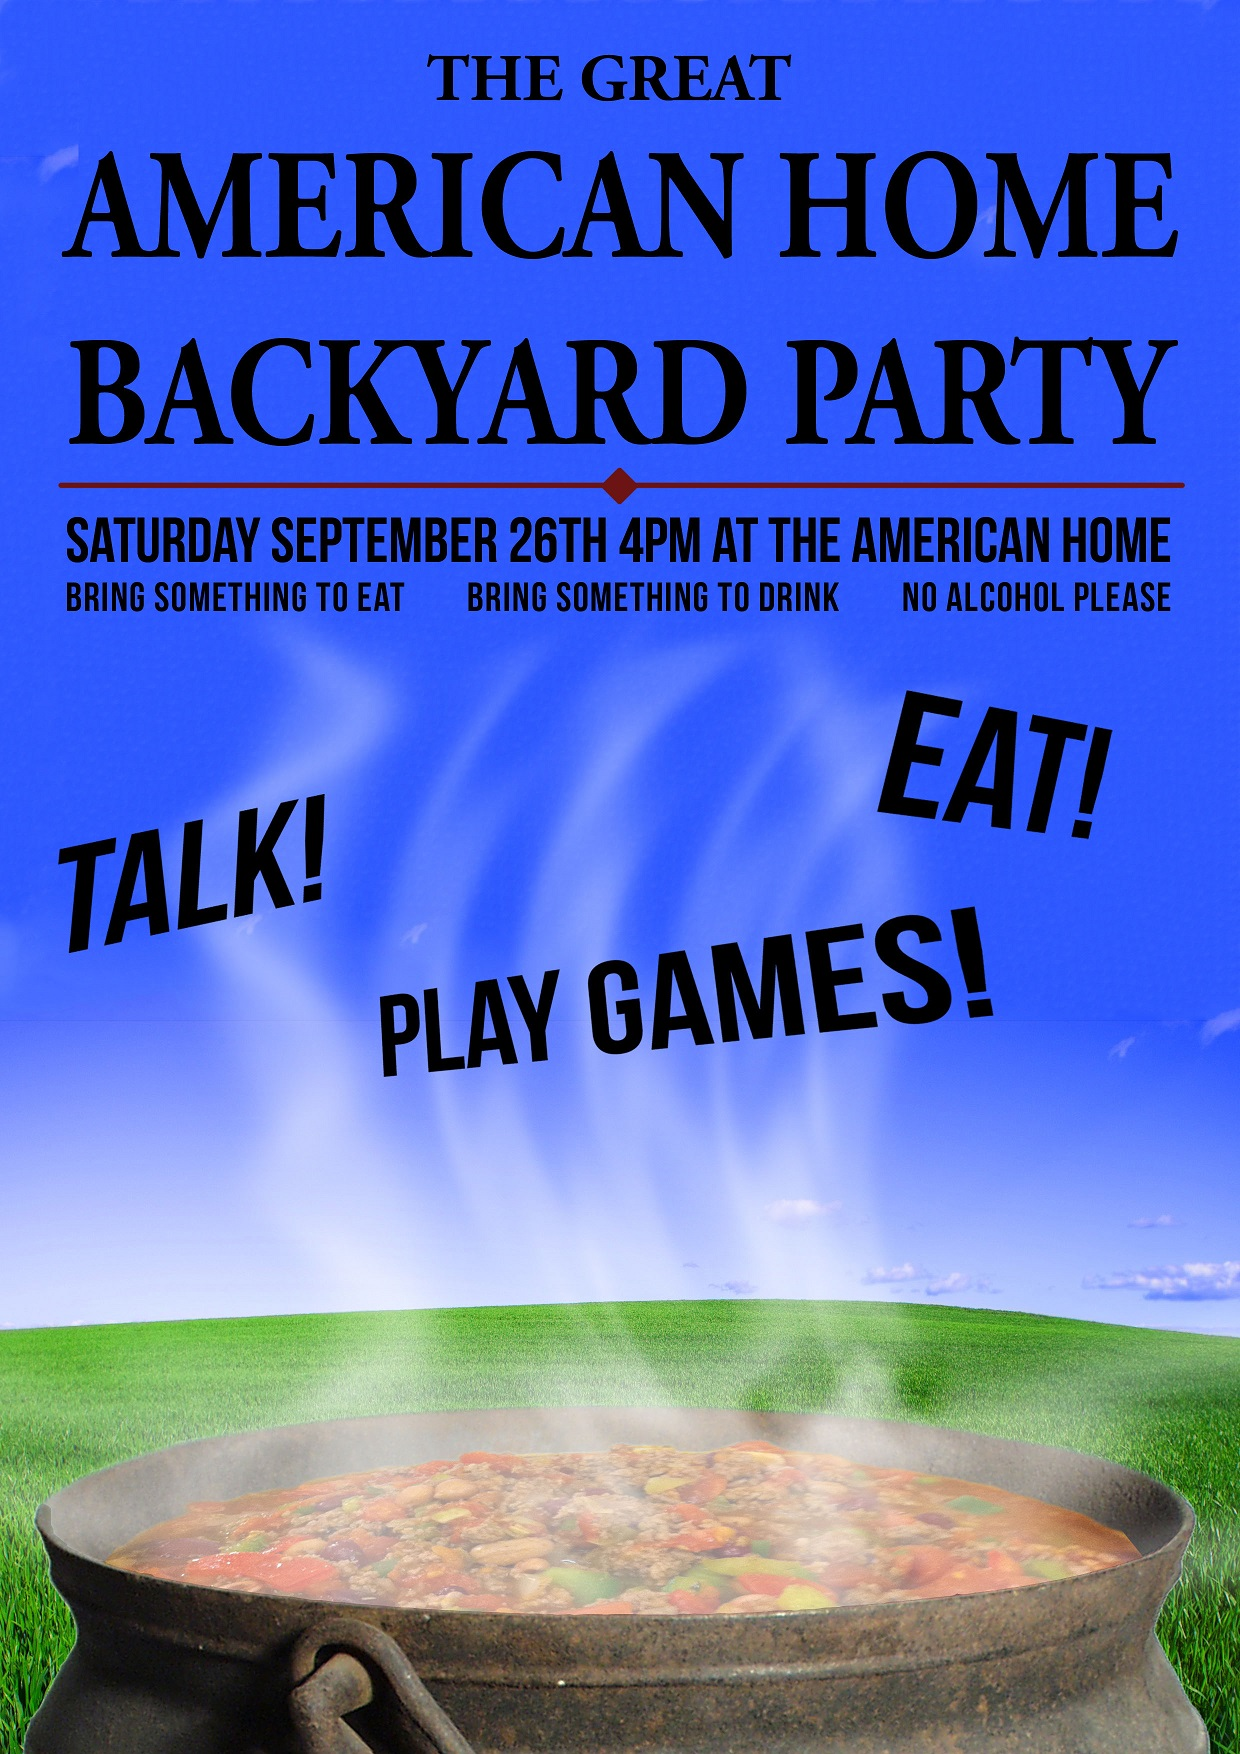 backyardparty1